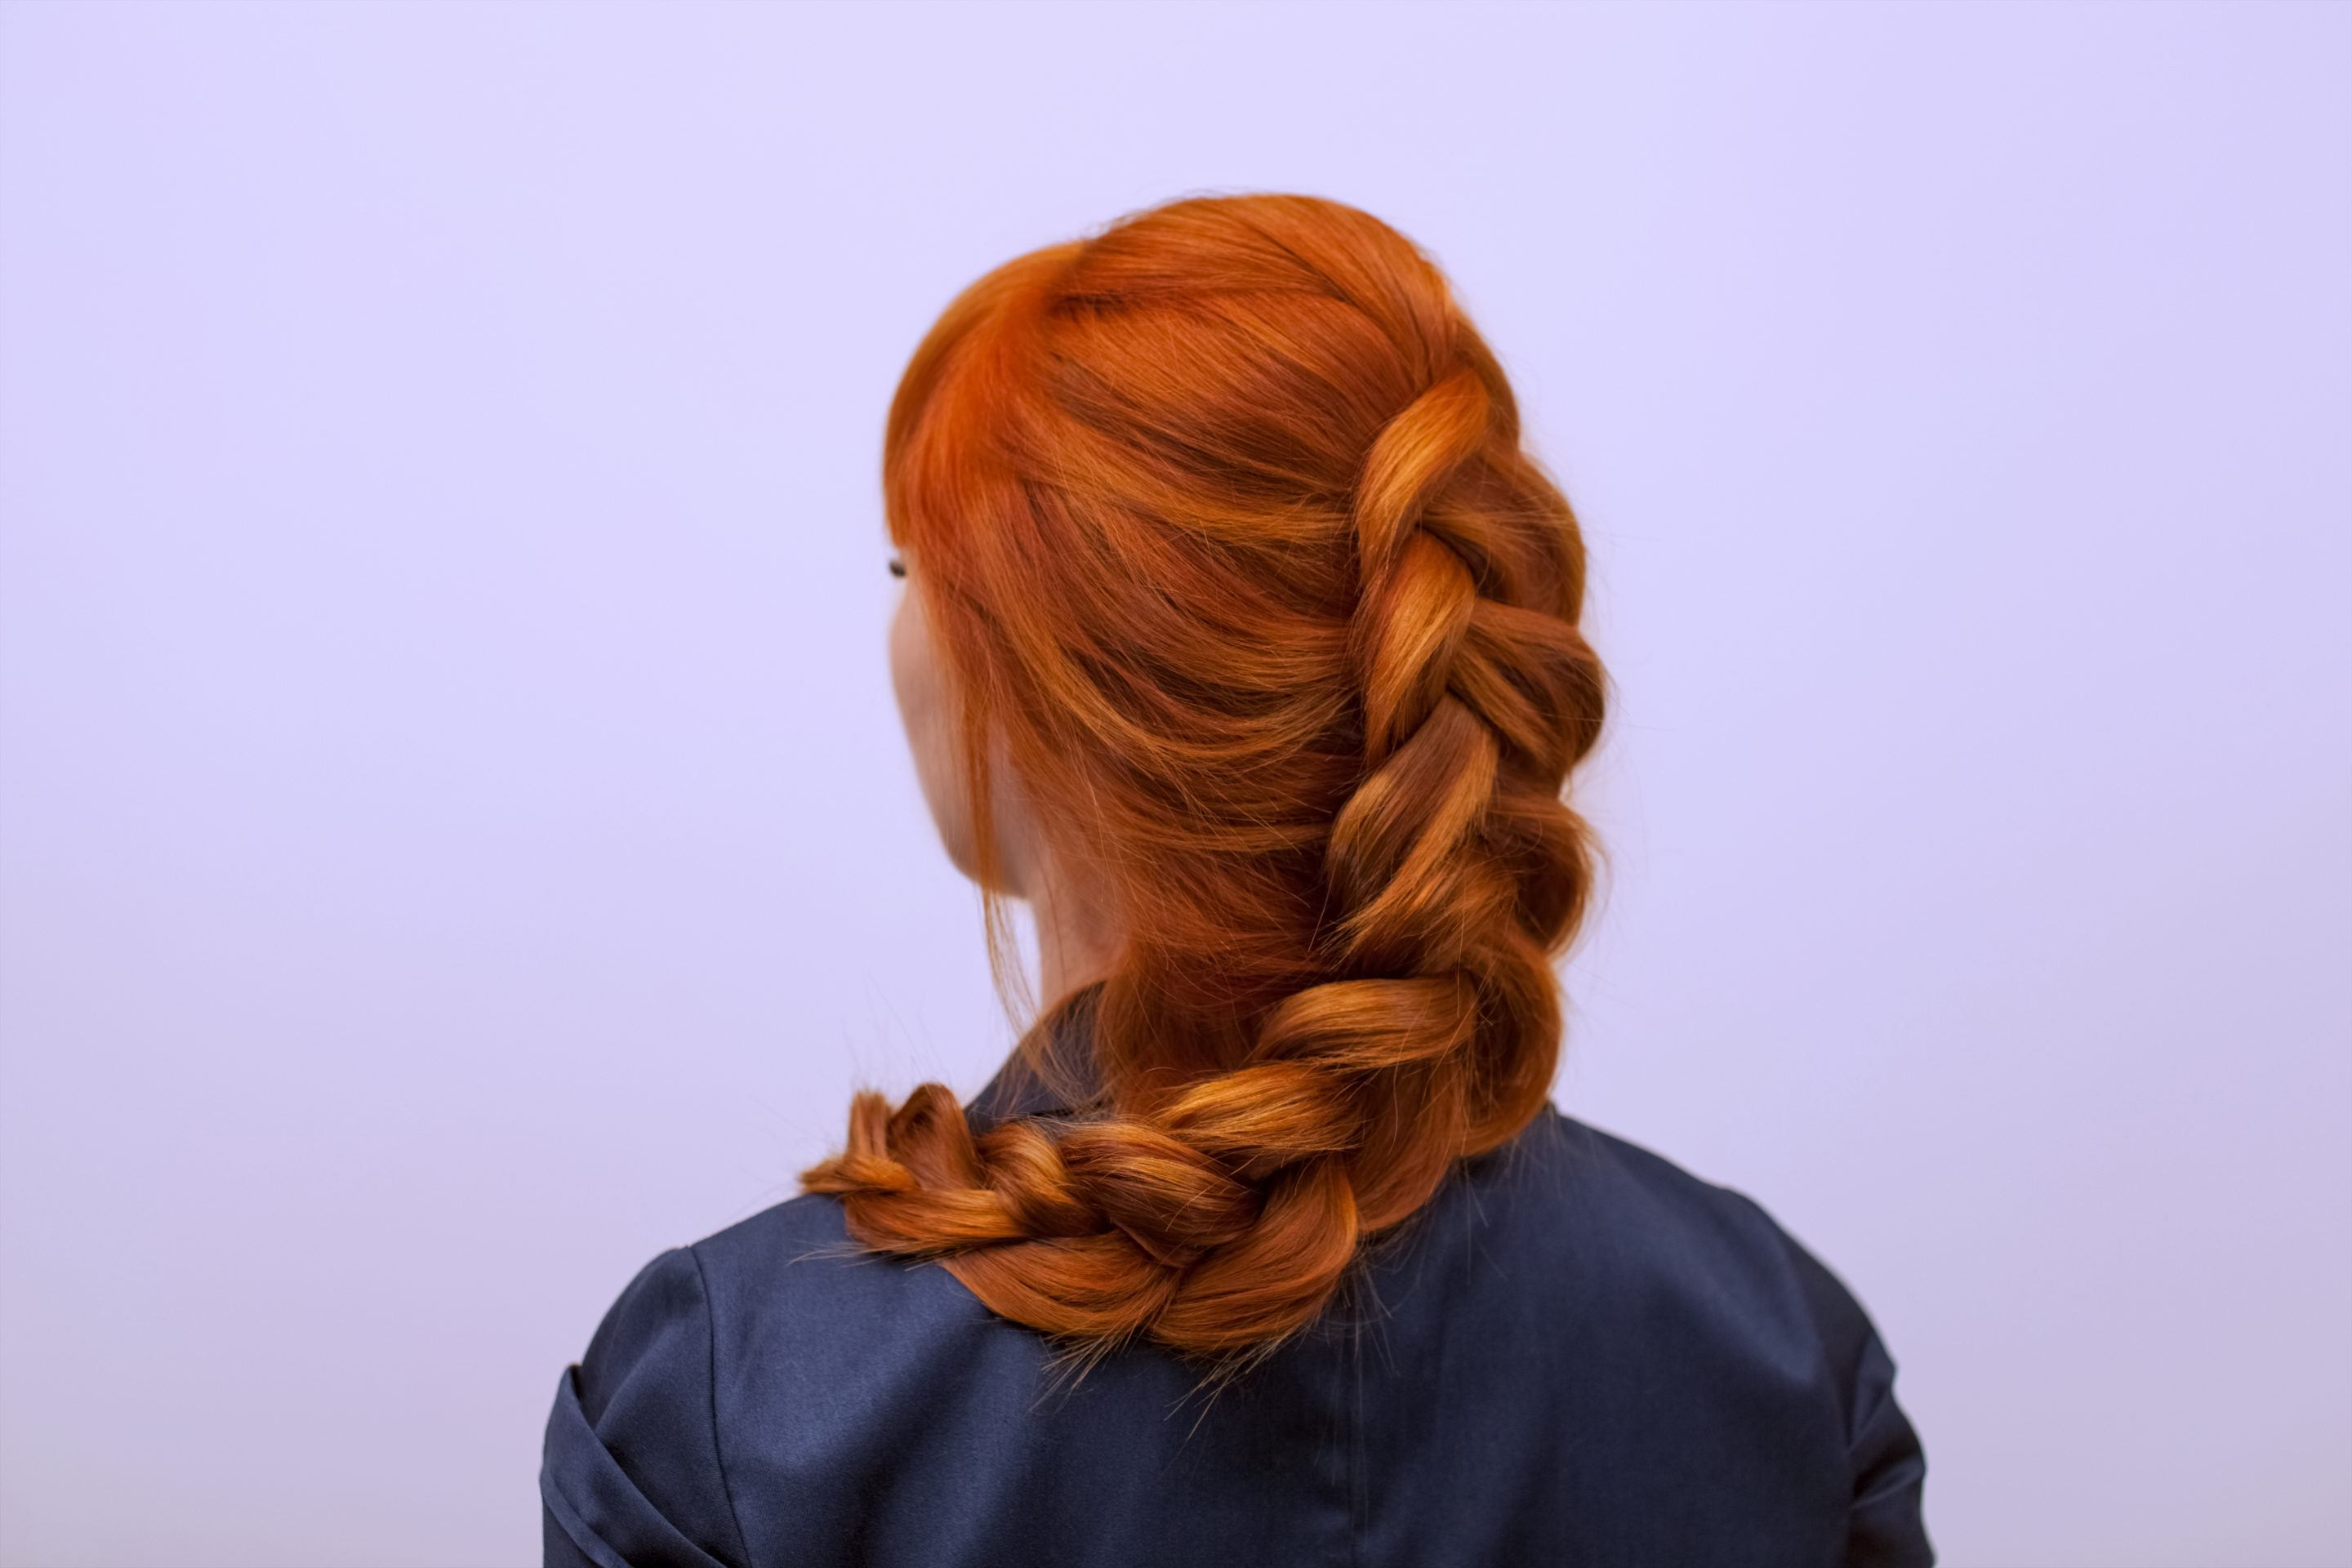 Thumbnail for This often-forgotten step is the key to making your Dutch braids look Pinterest perfect